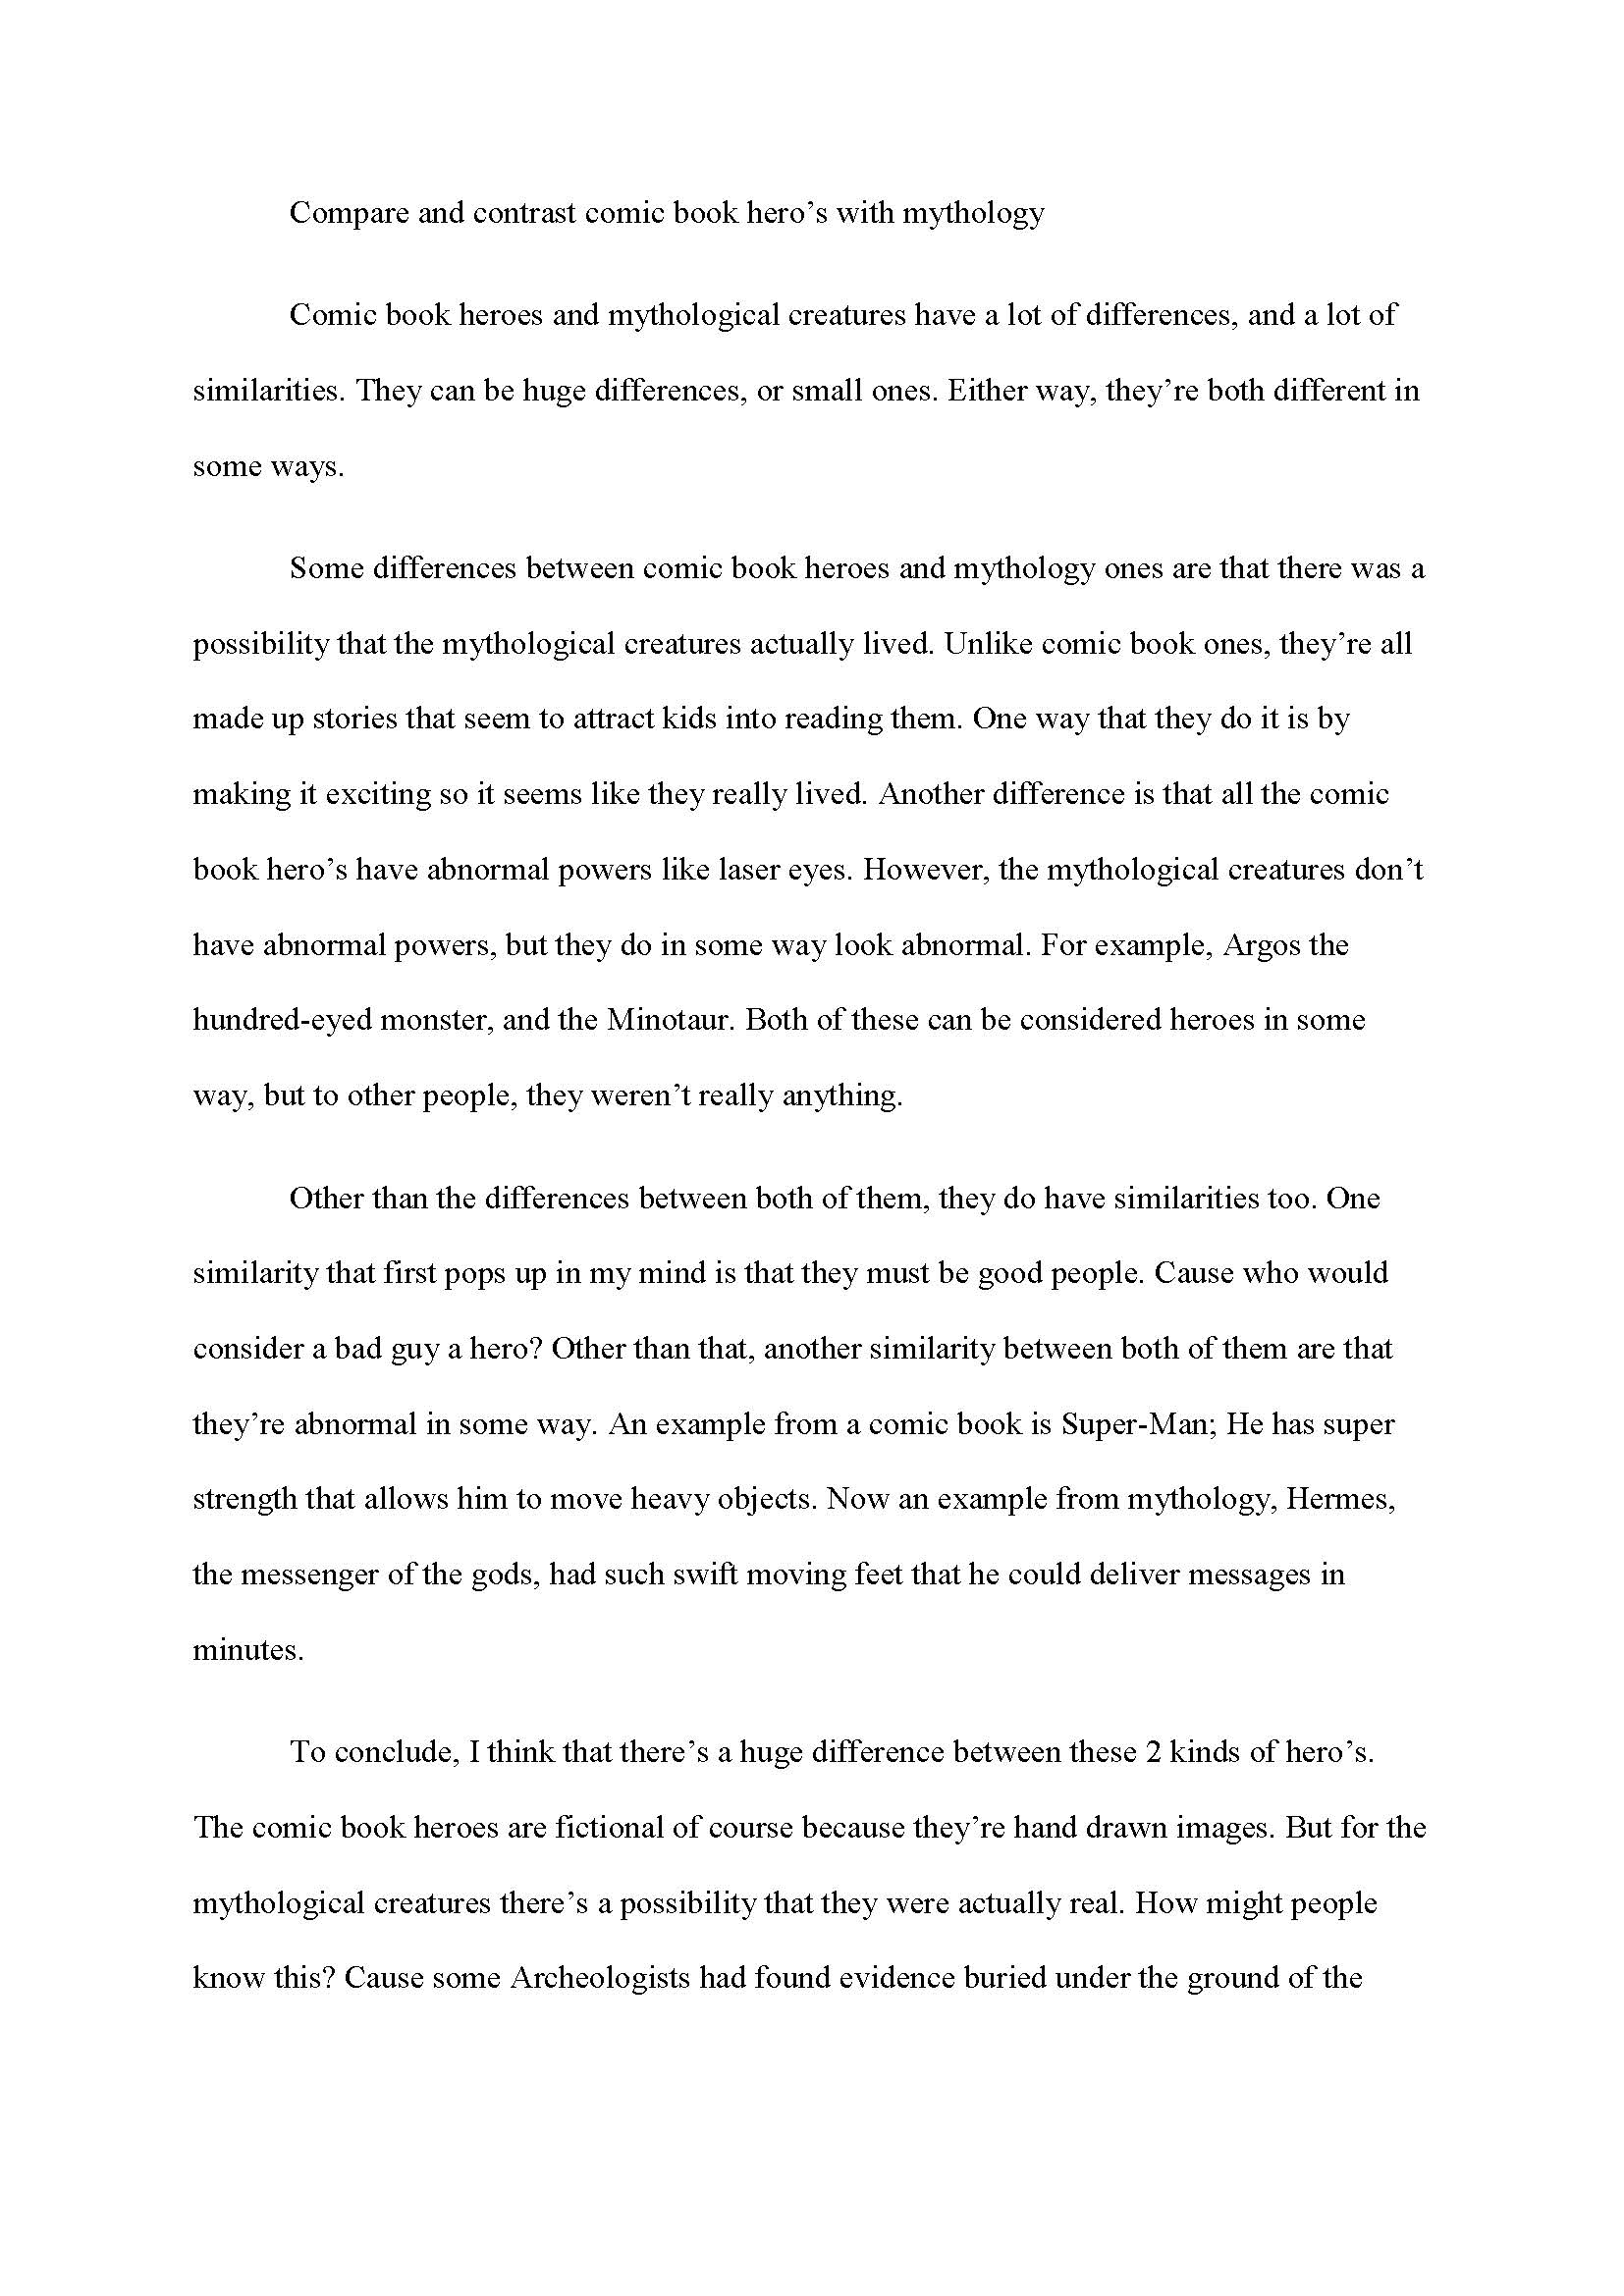 002 Essay Example Comparison And Contrast Examples Compare Frightening Free Pdf College Full